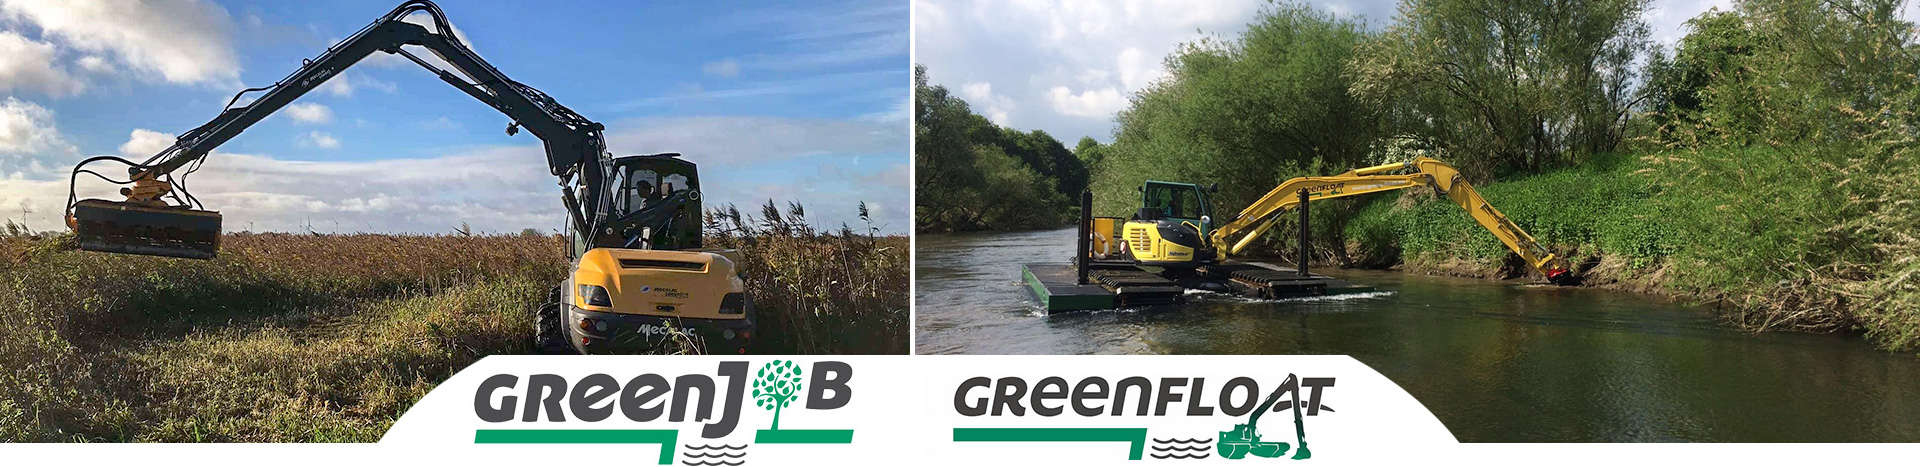 GreenJob & Greenfloat. MBN GreenLine